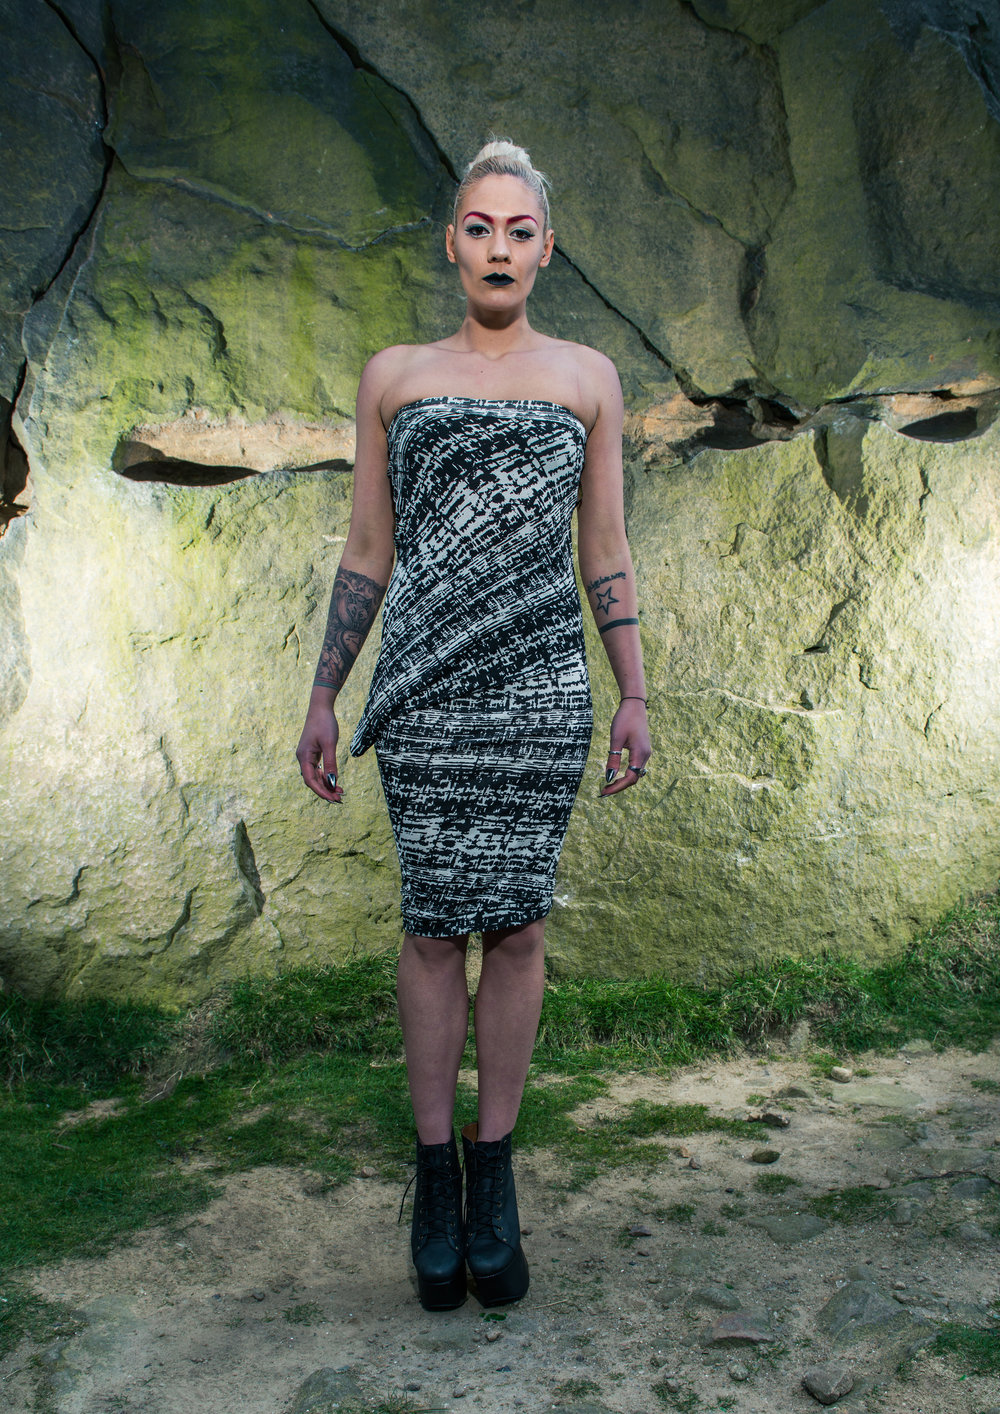 zaramia-ava-zaramiaava-leeds-fashion-designer-ethical-sustainable-tailored-minimalist-aya-grey-print-fitted-bandeau-point-skirt-versatile-drape-cowl-styling-womenswear-models-photoshoot-location-22